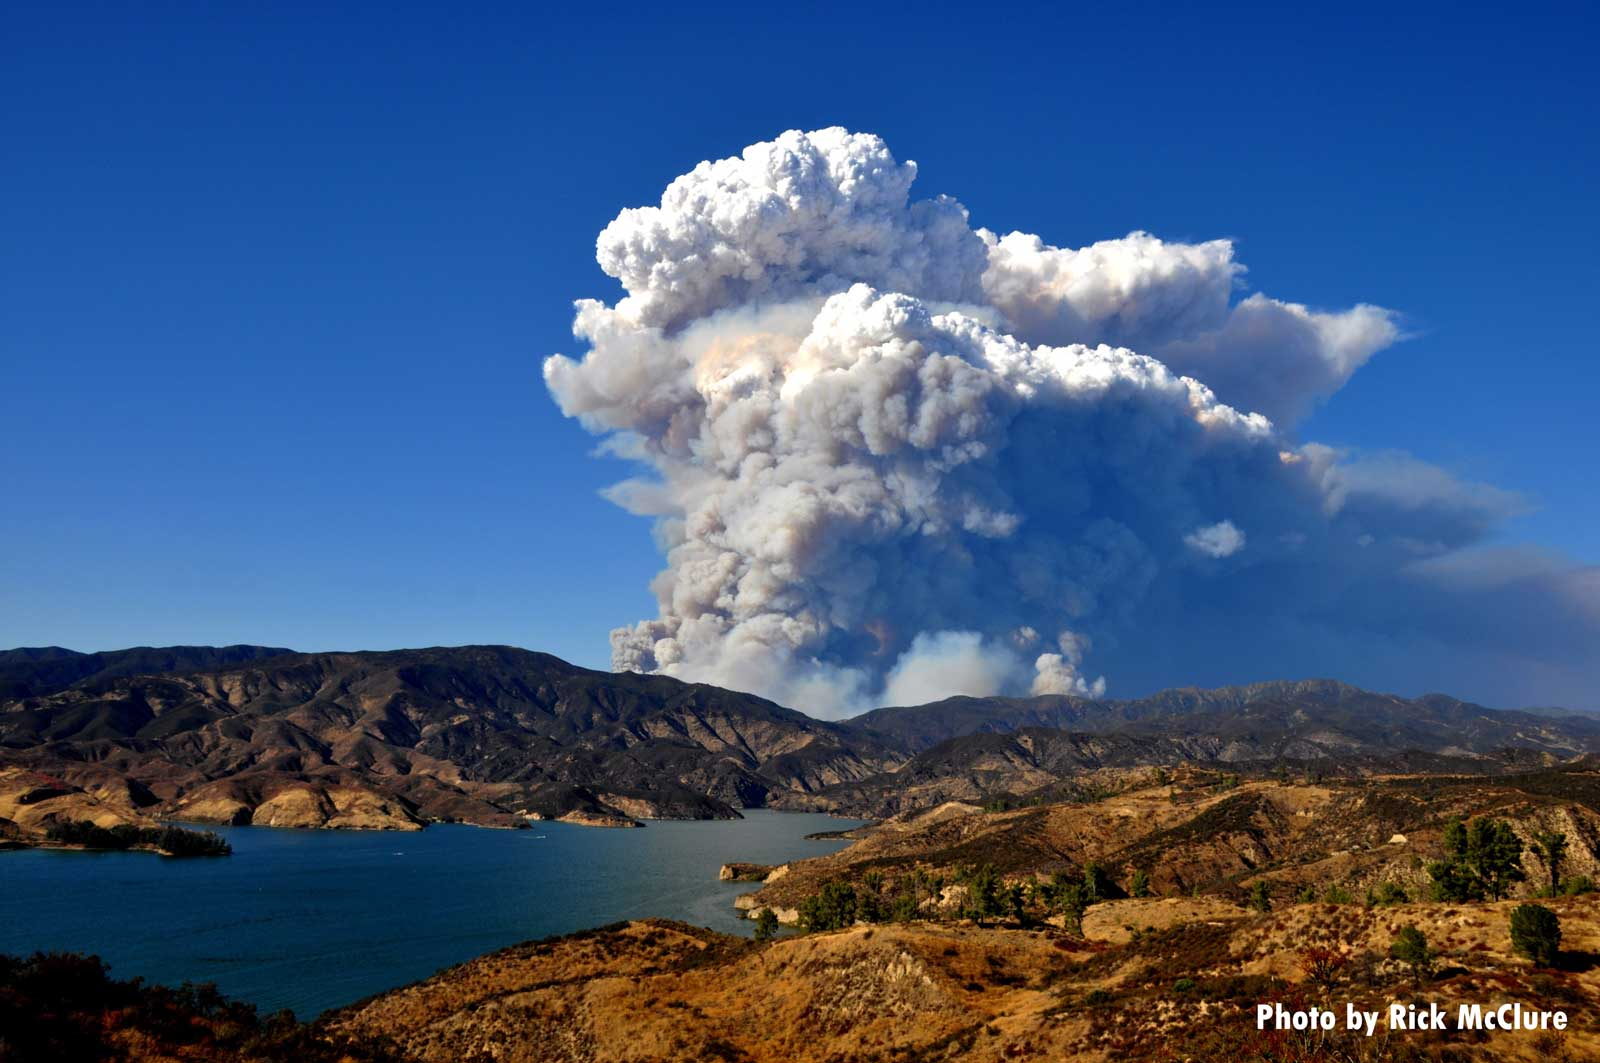 Wildland fire near Lake Hughes